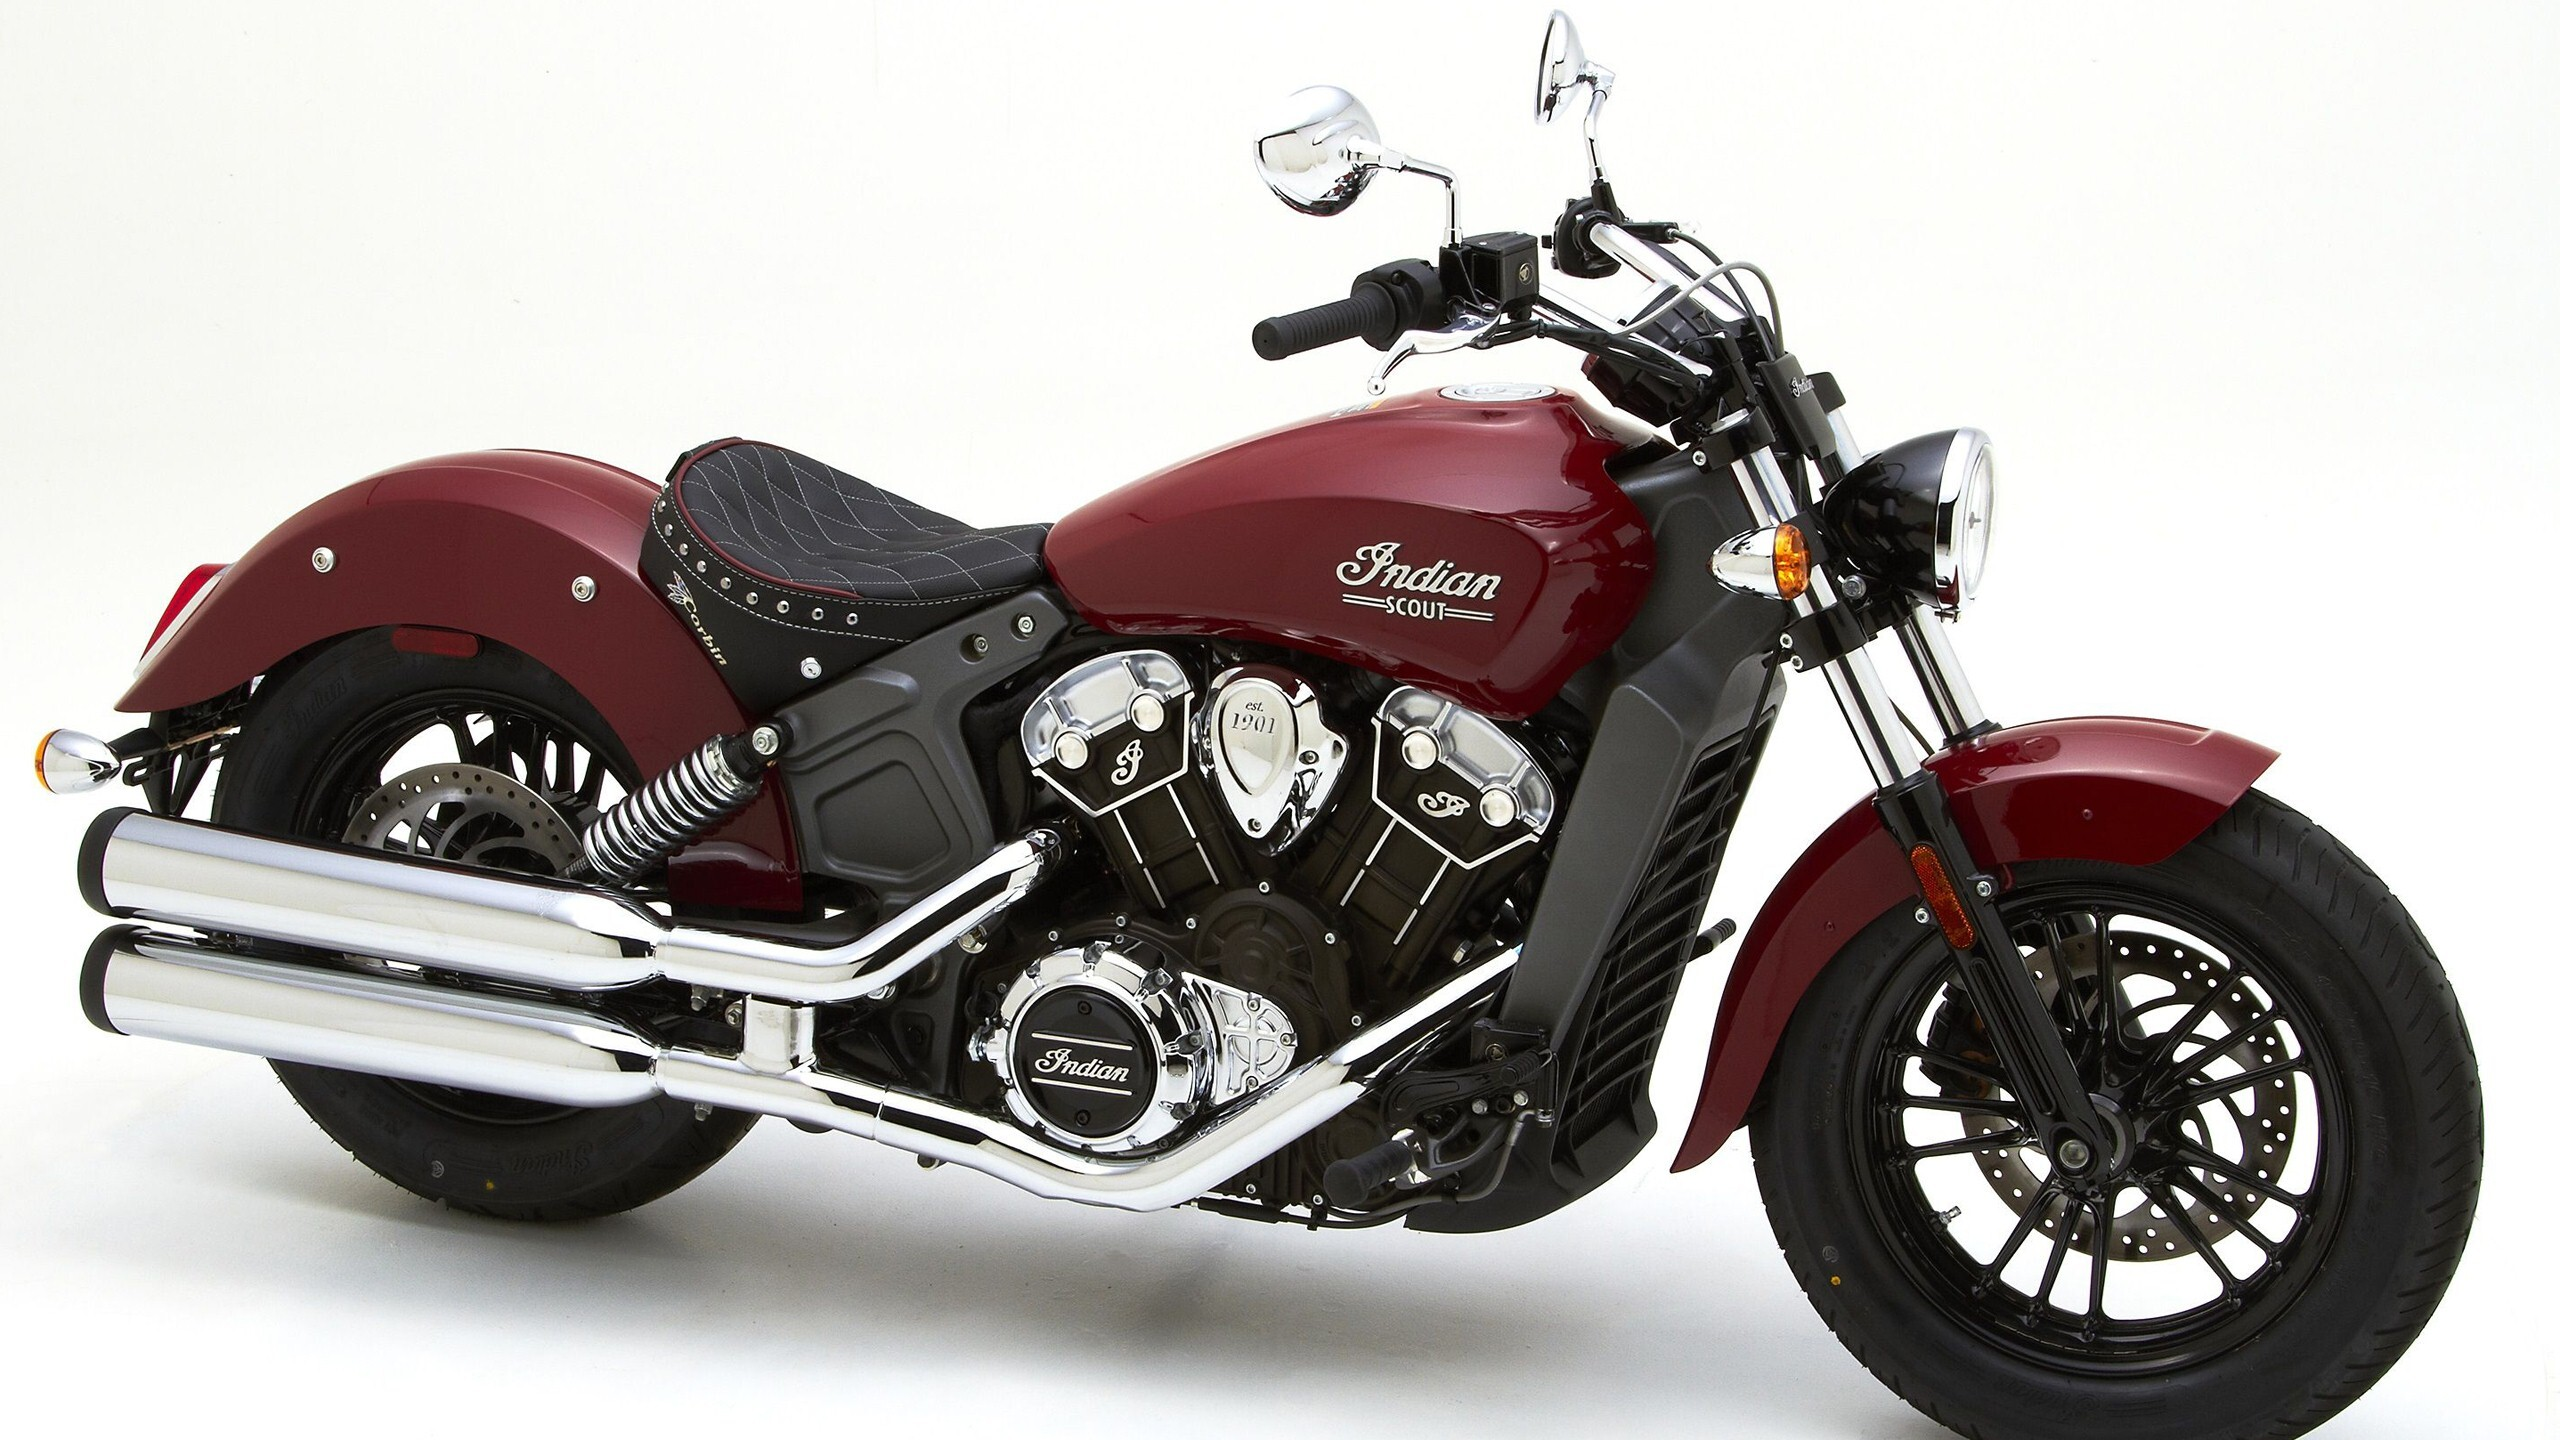 Indian scout one sheeter bike hd wallpapers - Indian scout bike hd wallpaper ...